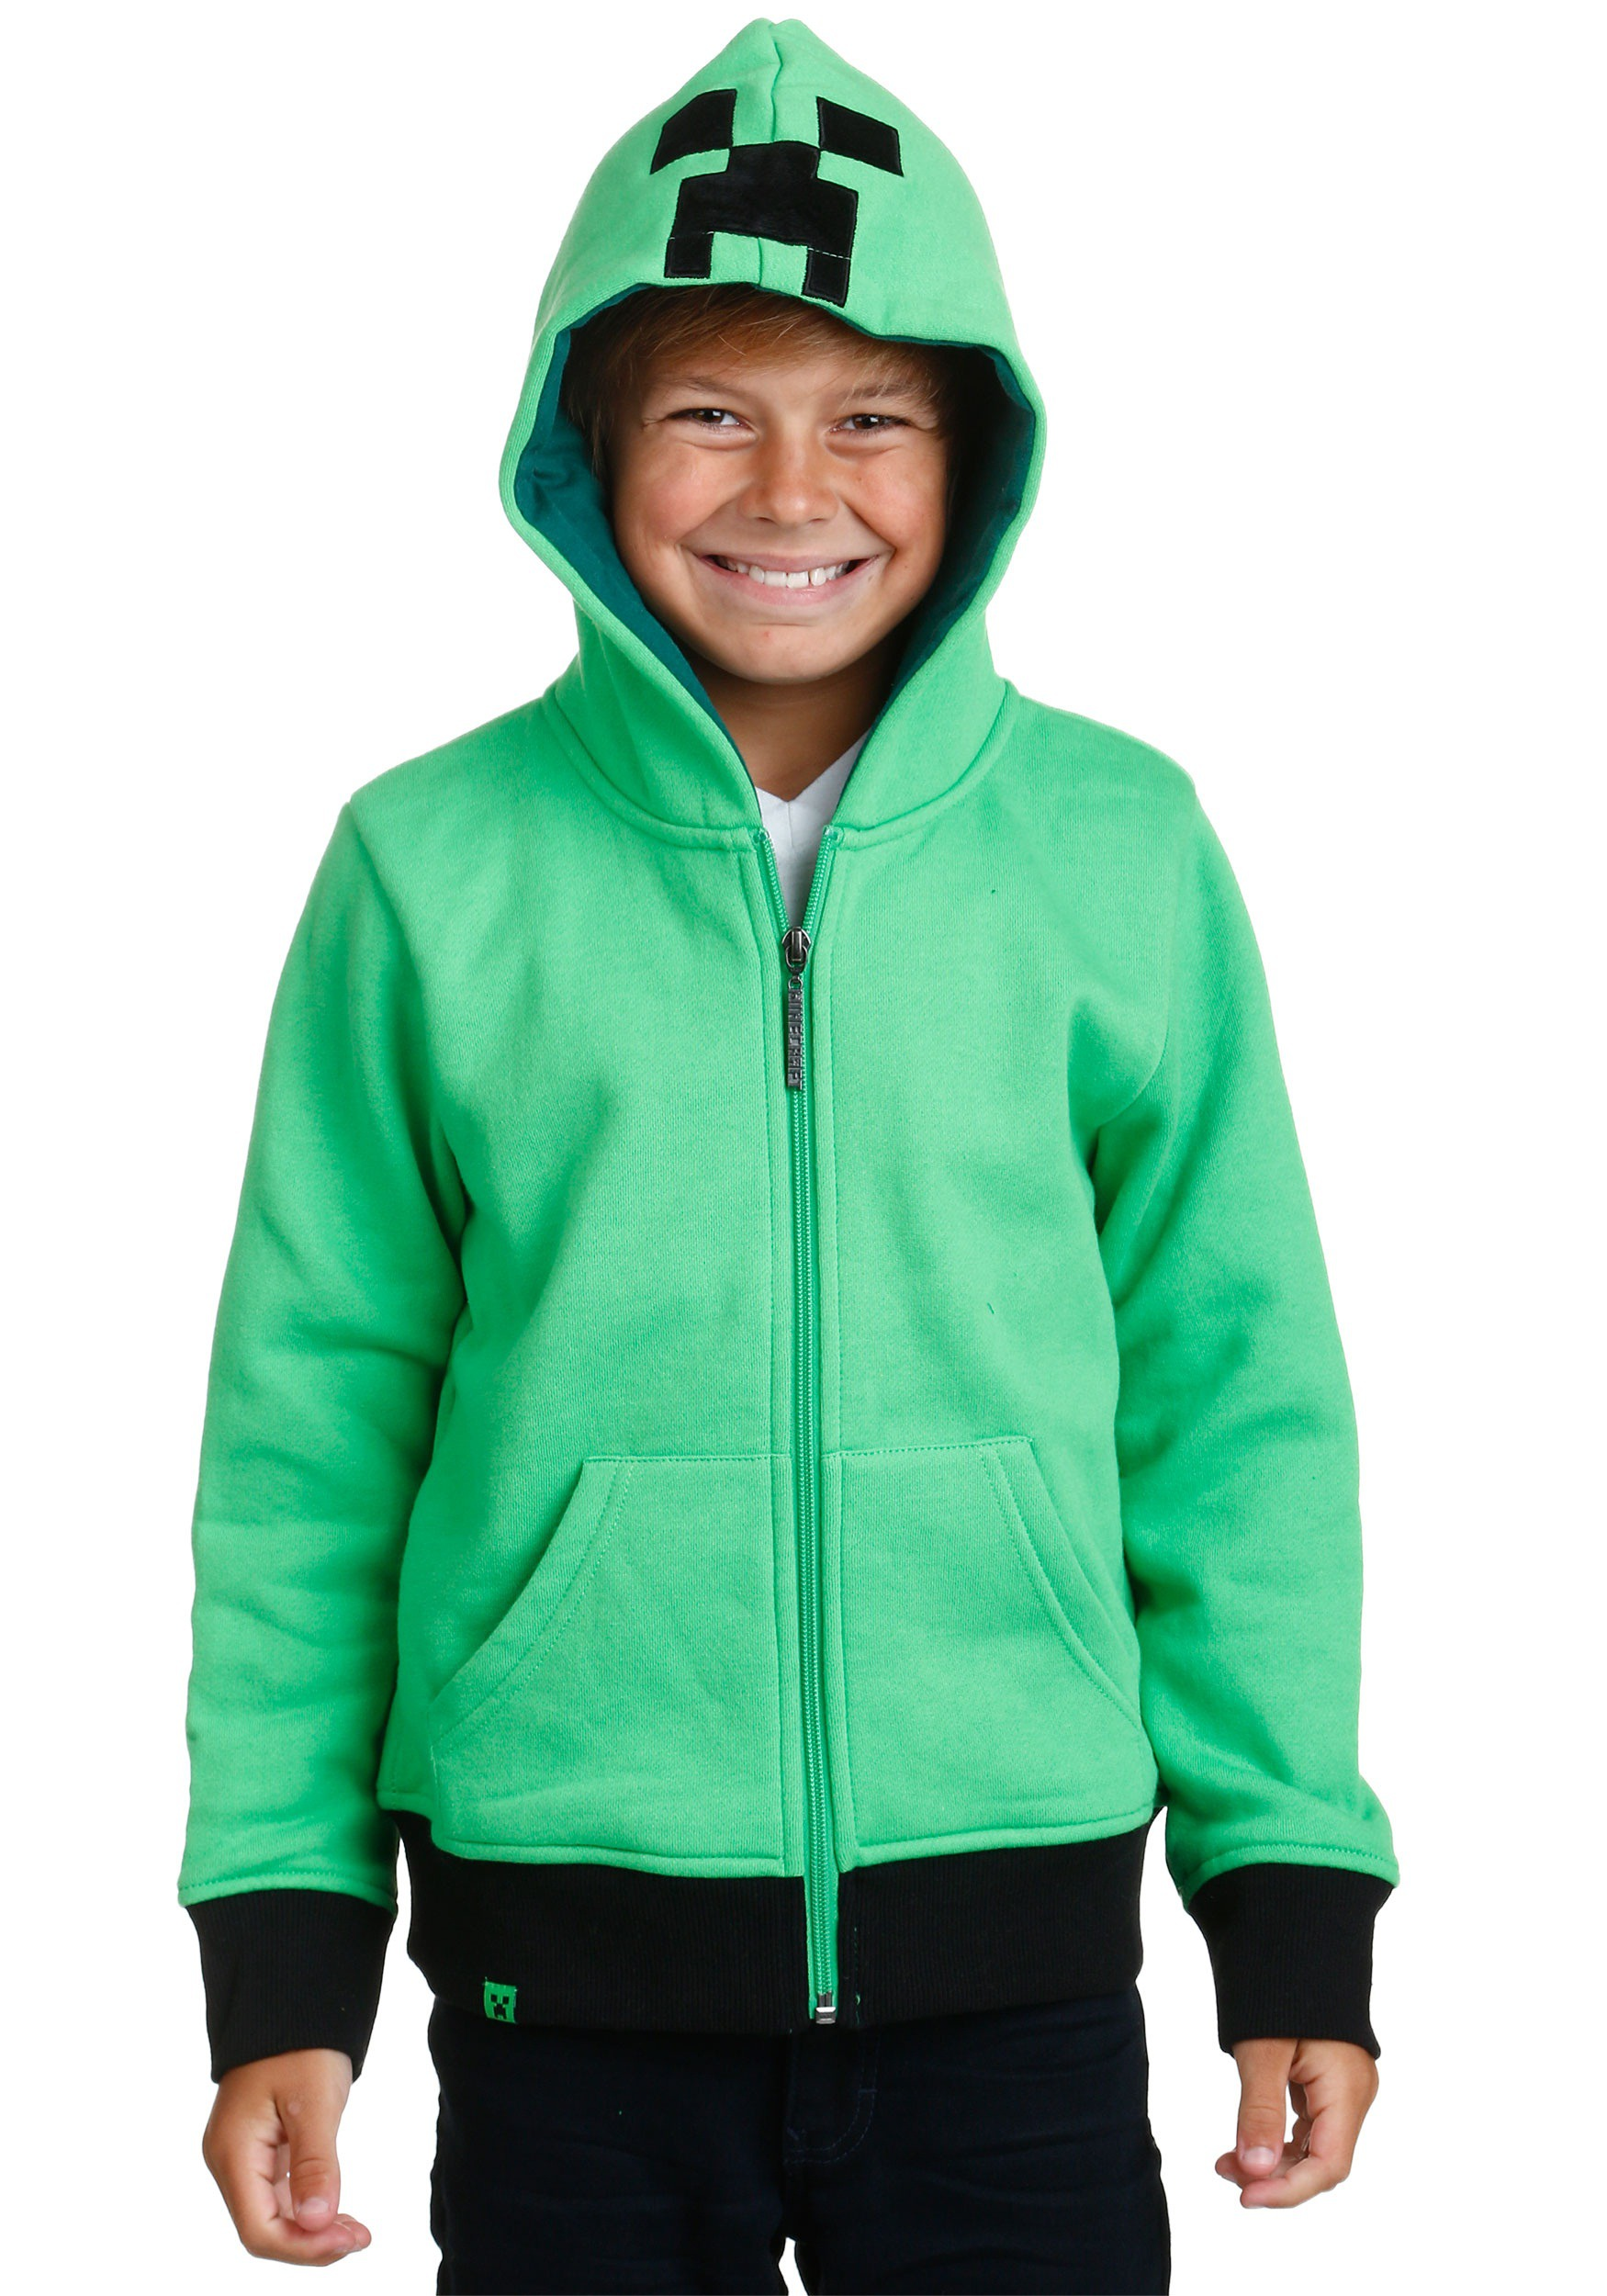 Selected category All. Clothing, Shoes & Accessories. Boys' Sweatshirts & Hoodies (Sizes 4 & Up) Boys' Outfits & Sets (Sizes 4 & Up) Unisex Kids' Sweatshirts & Hoodies.